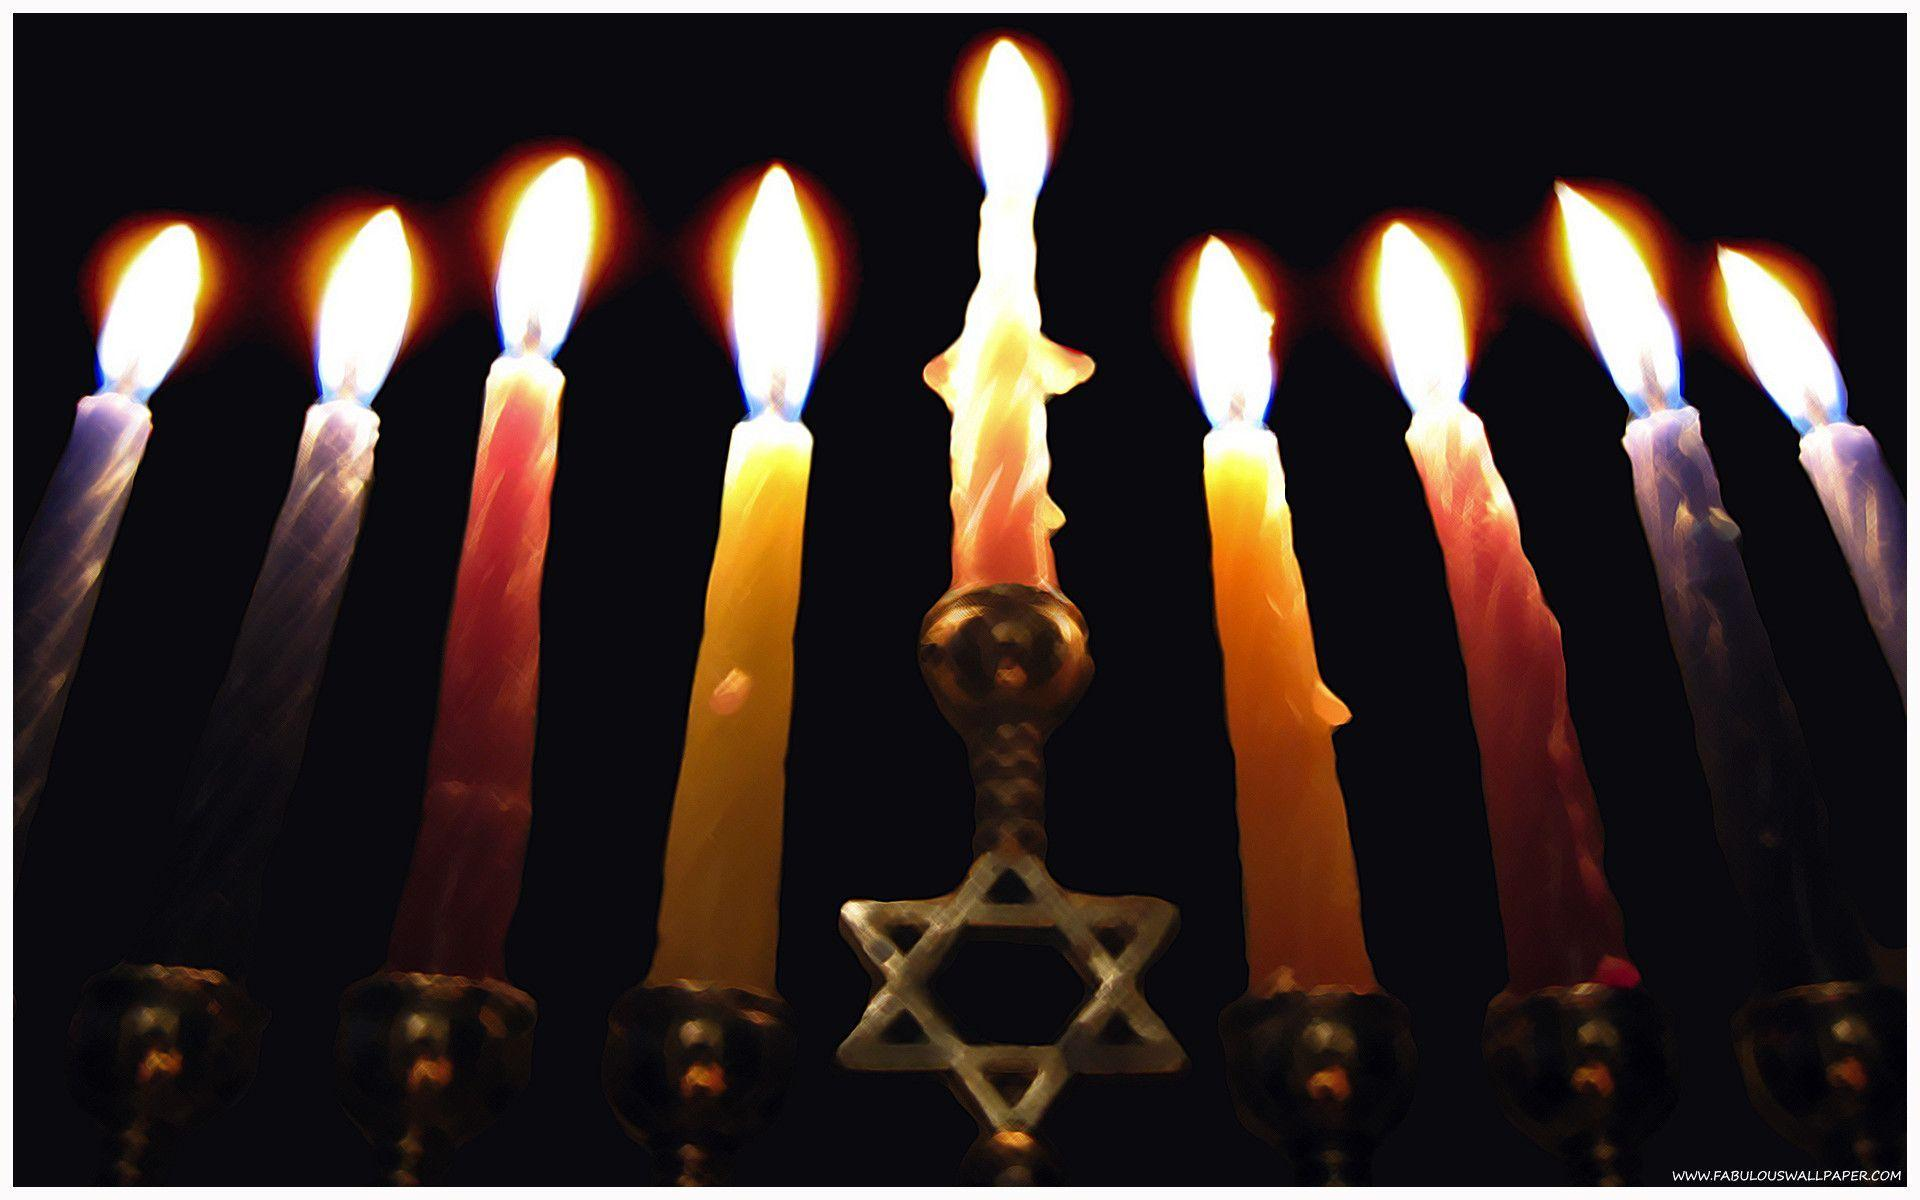 Hanukkah Browser Themes & Desktop Wallpapers